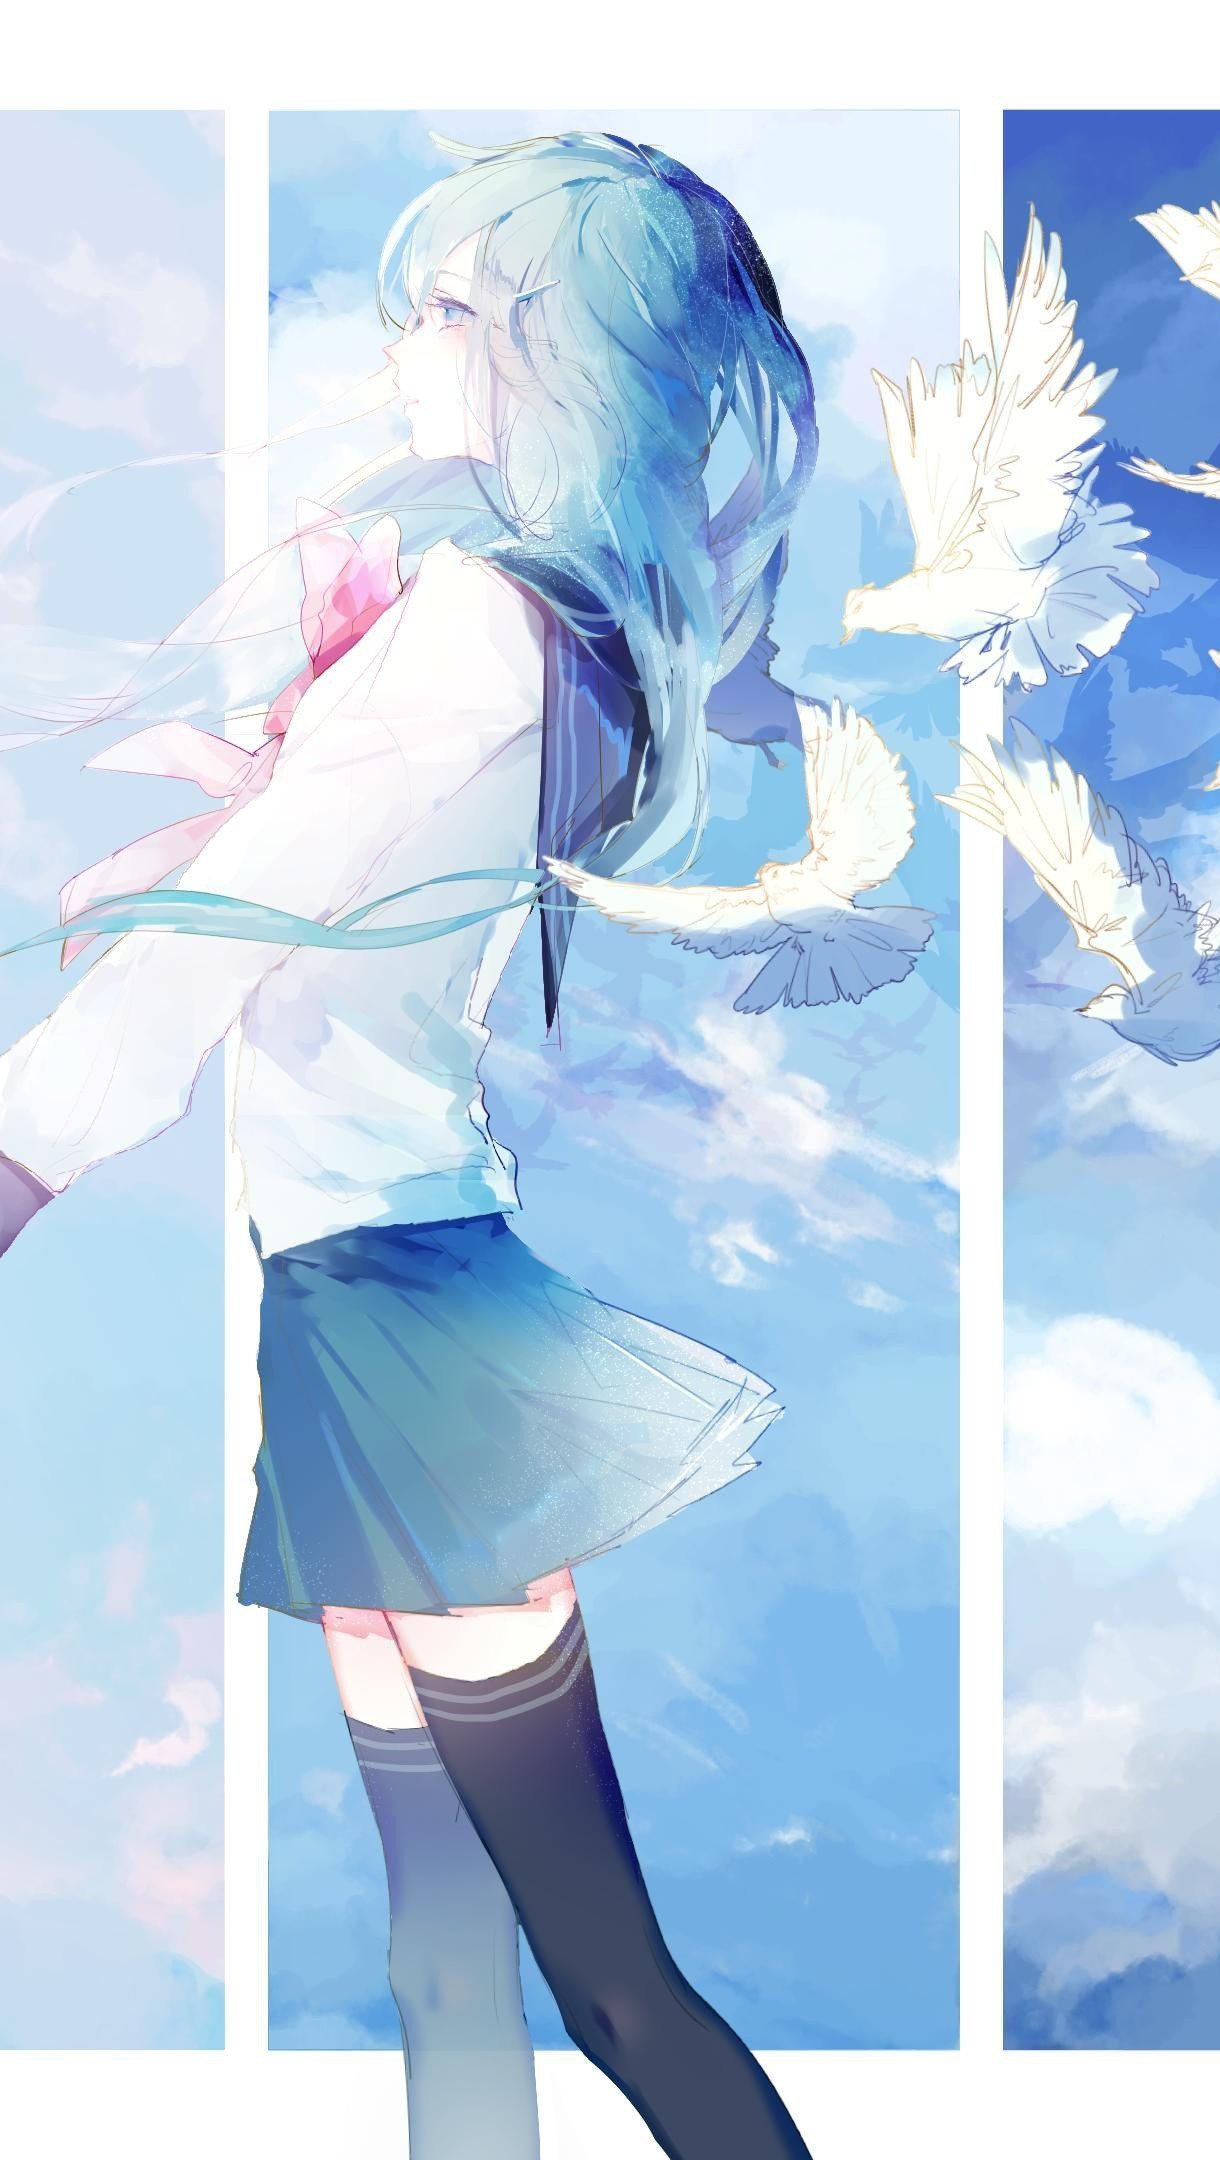 Wallpaper Anime girl with pigeons Vertical